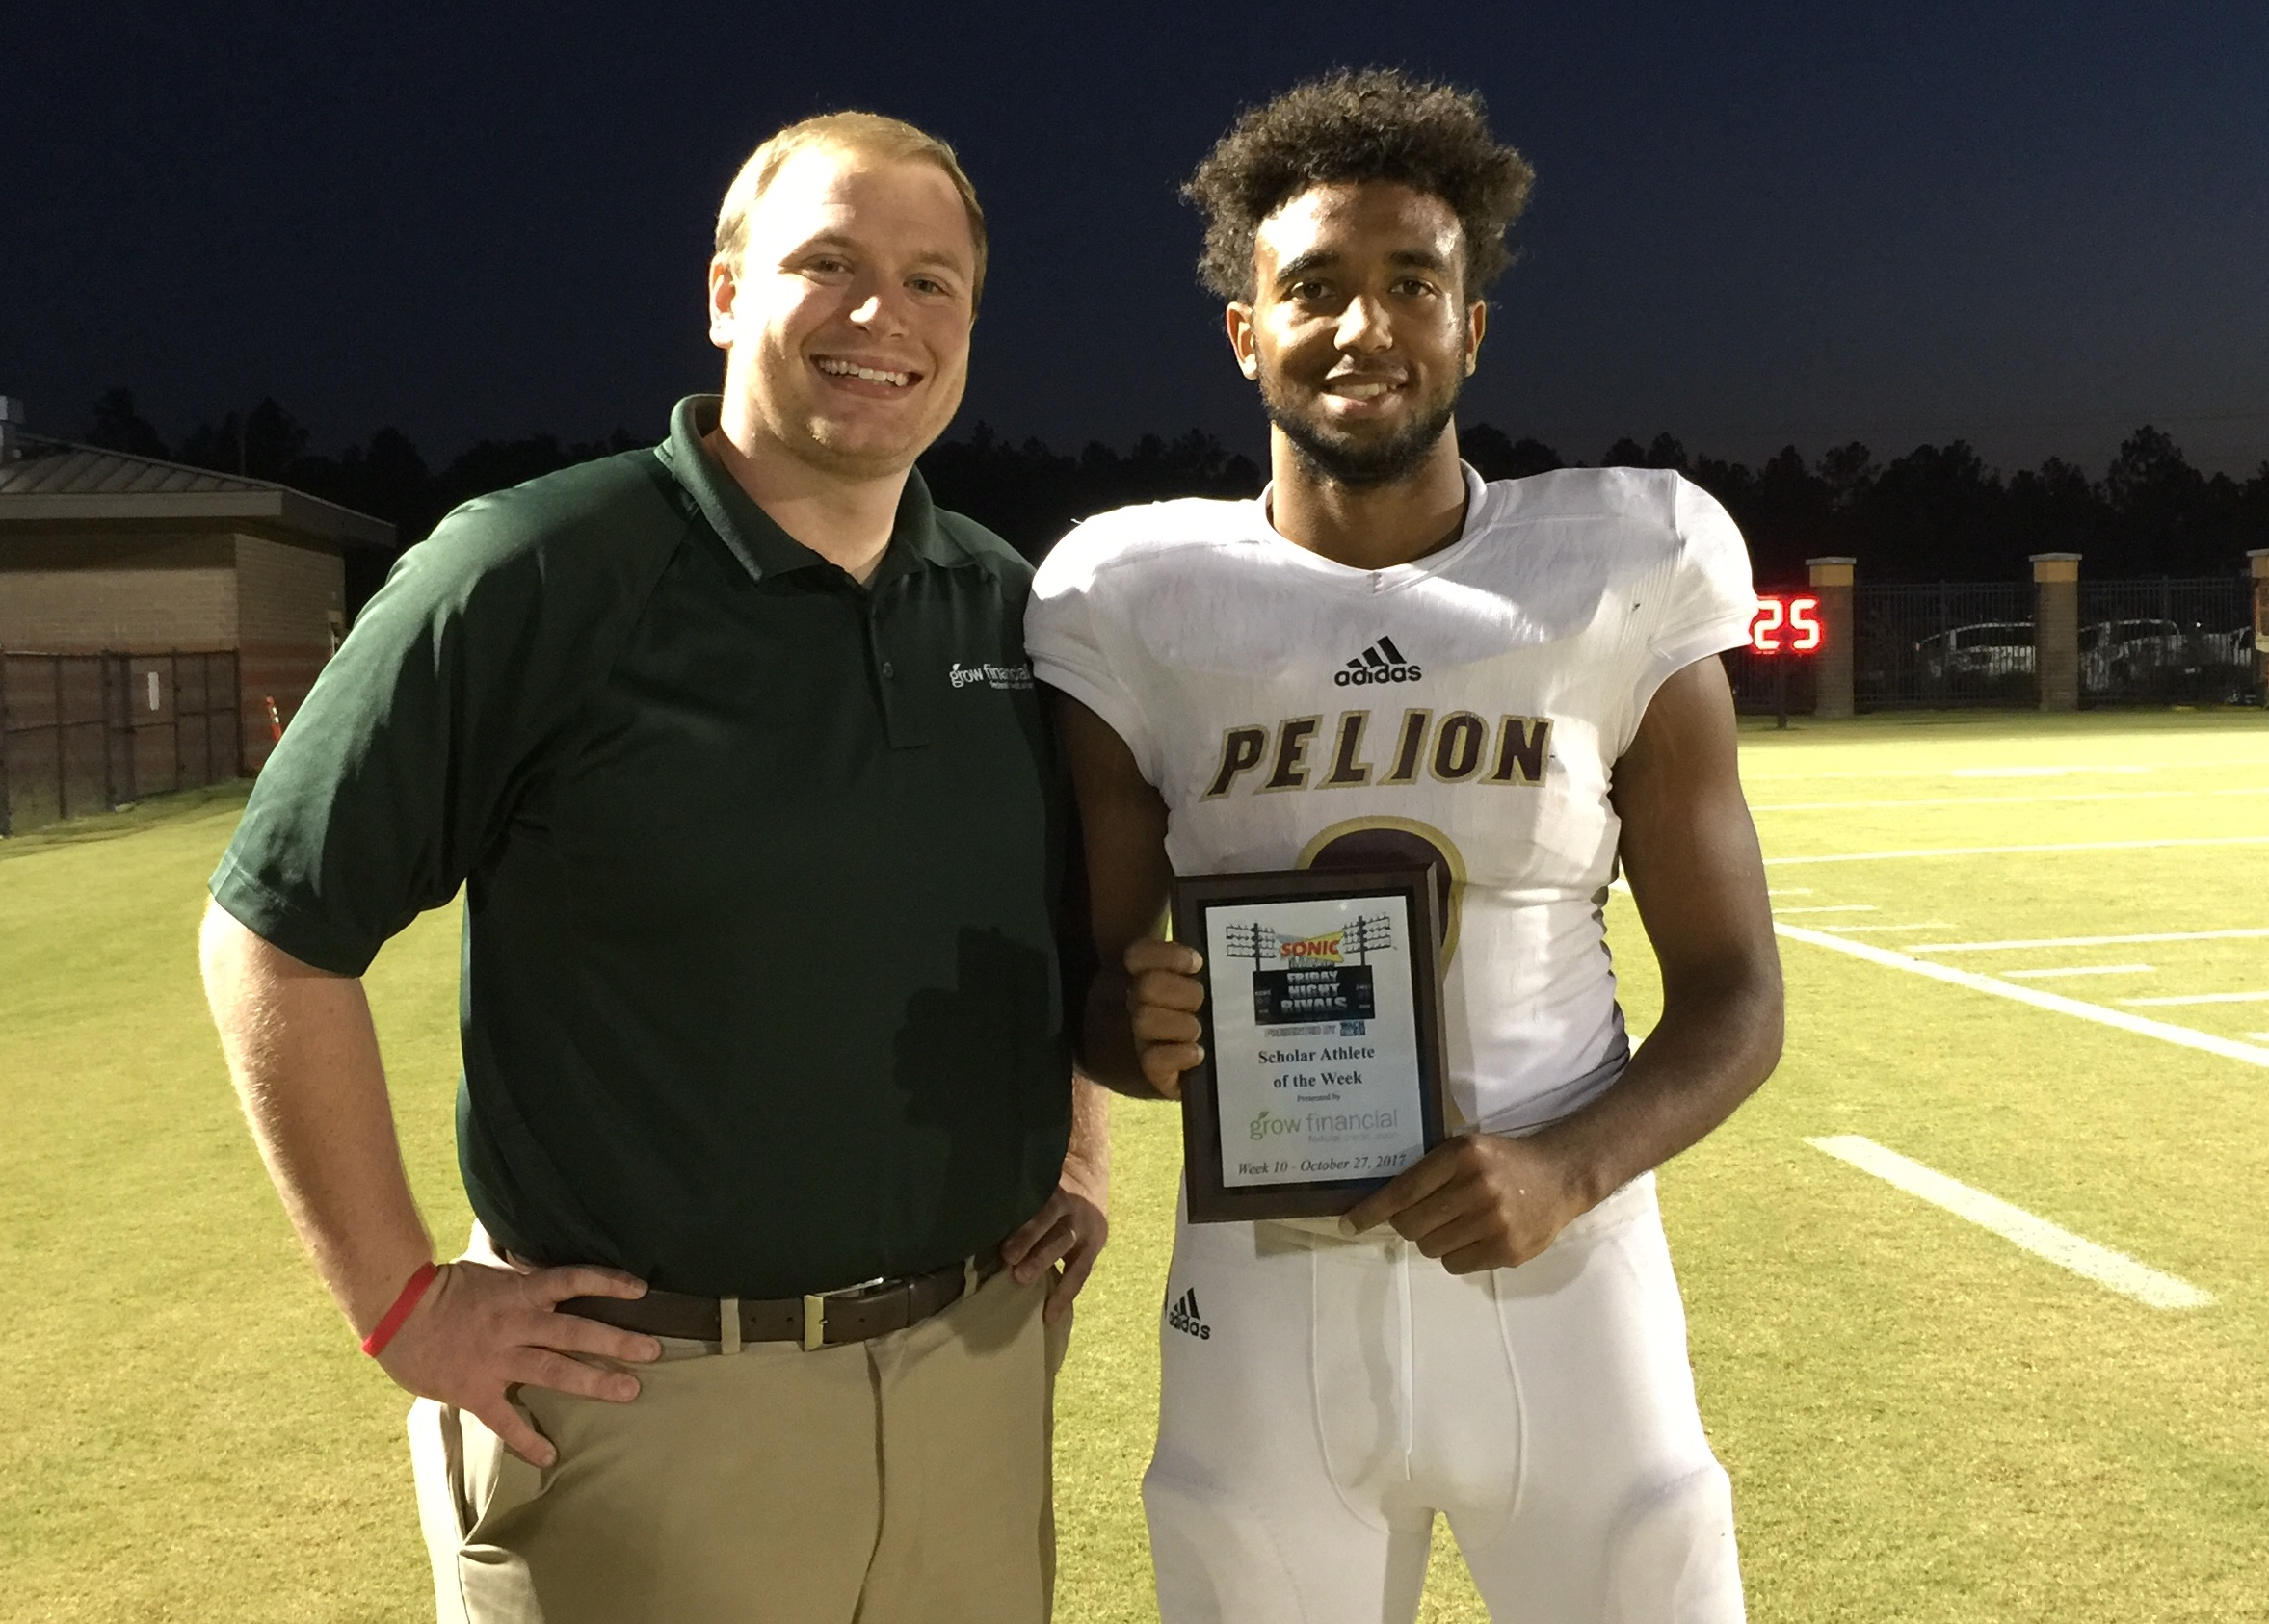 Dayrun Keith - Grow Financial Federal Credit Union Scholar Athlete